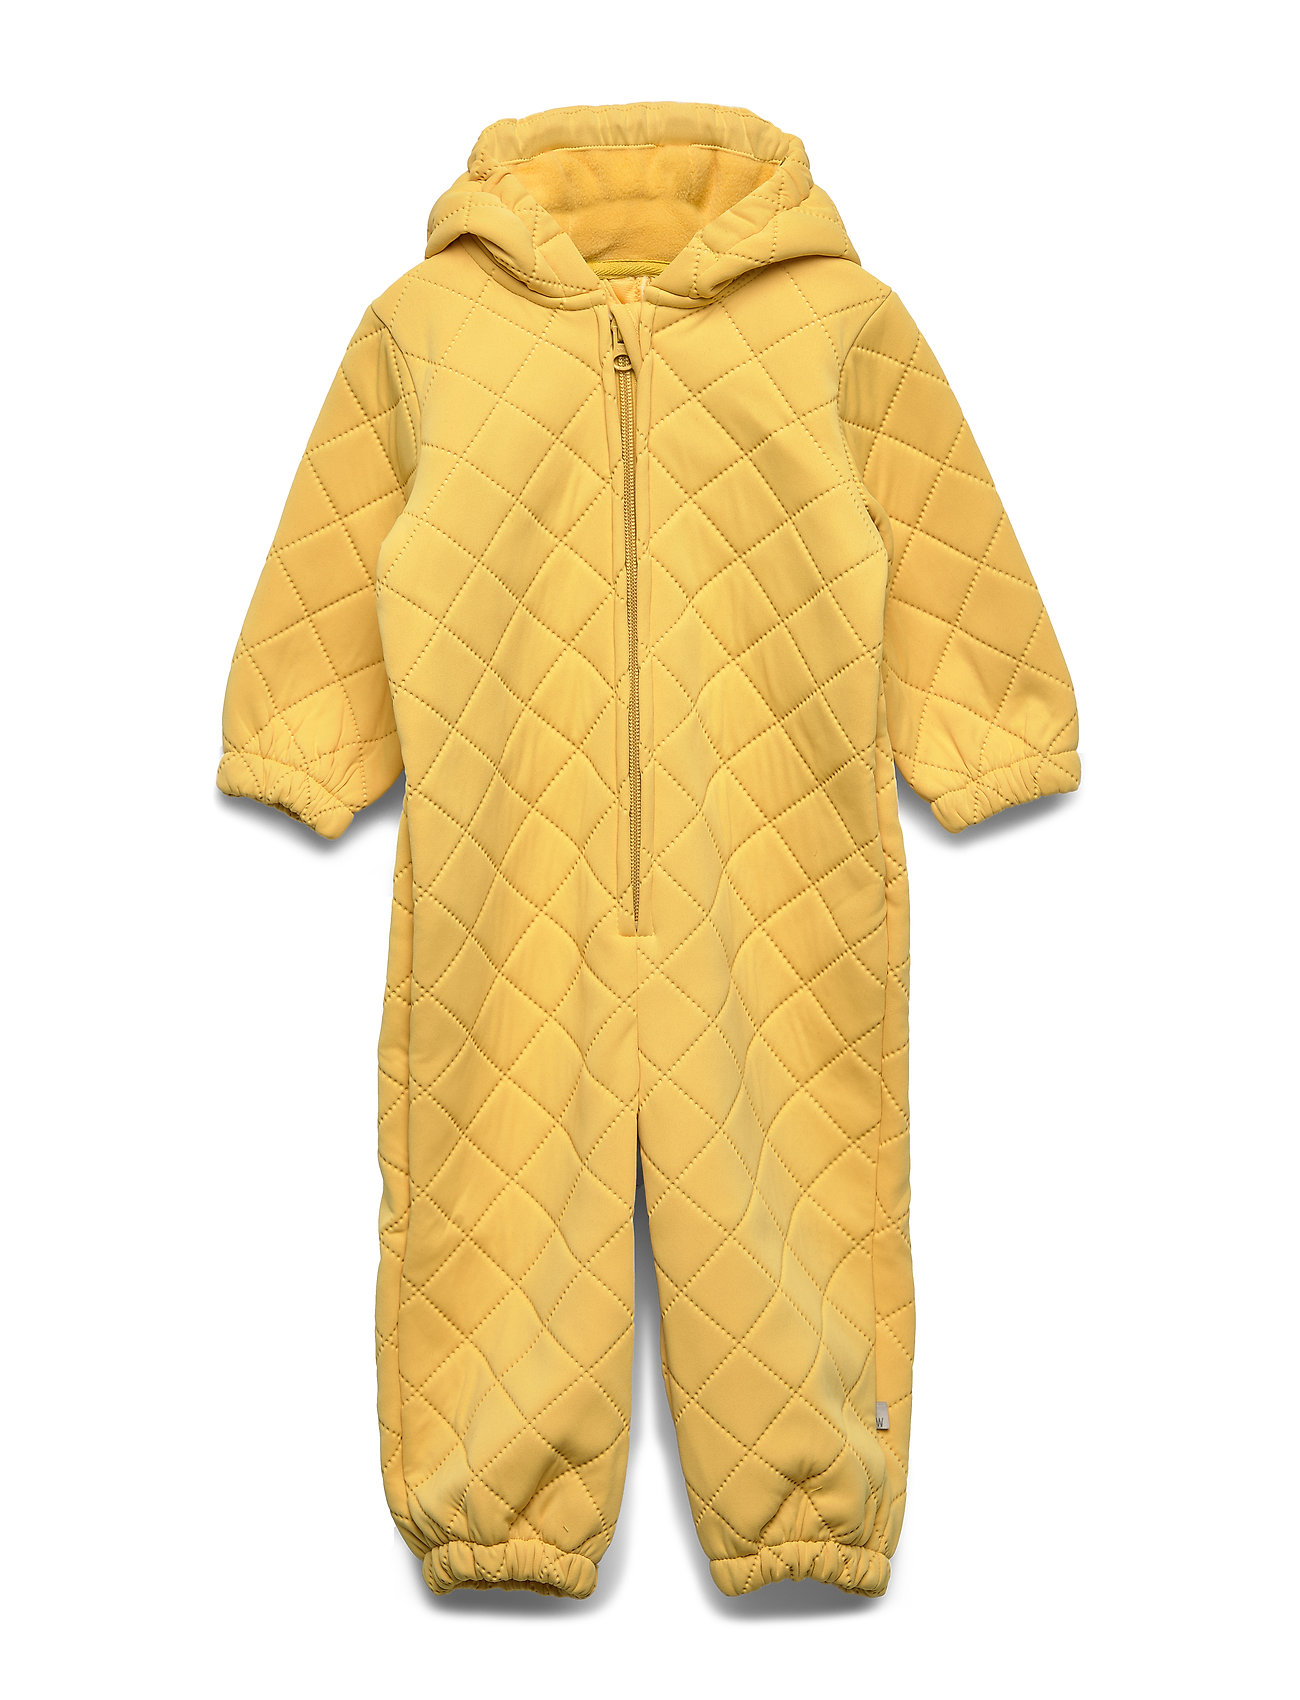 Wheat Thermosuit Harley - DARK STRAW